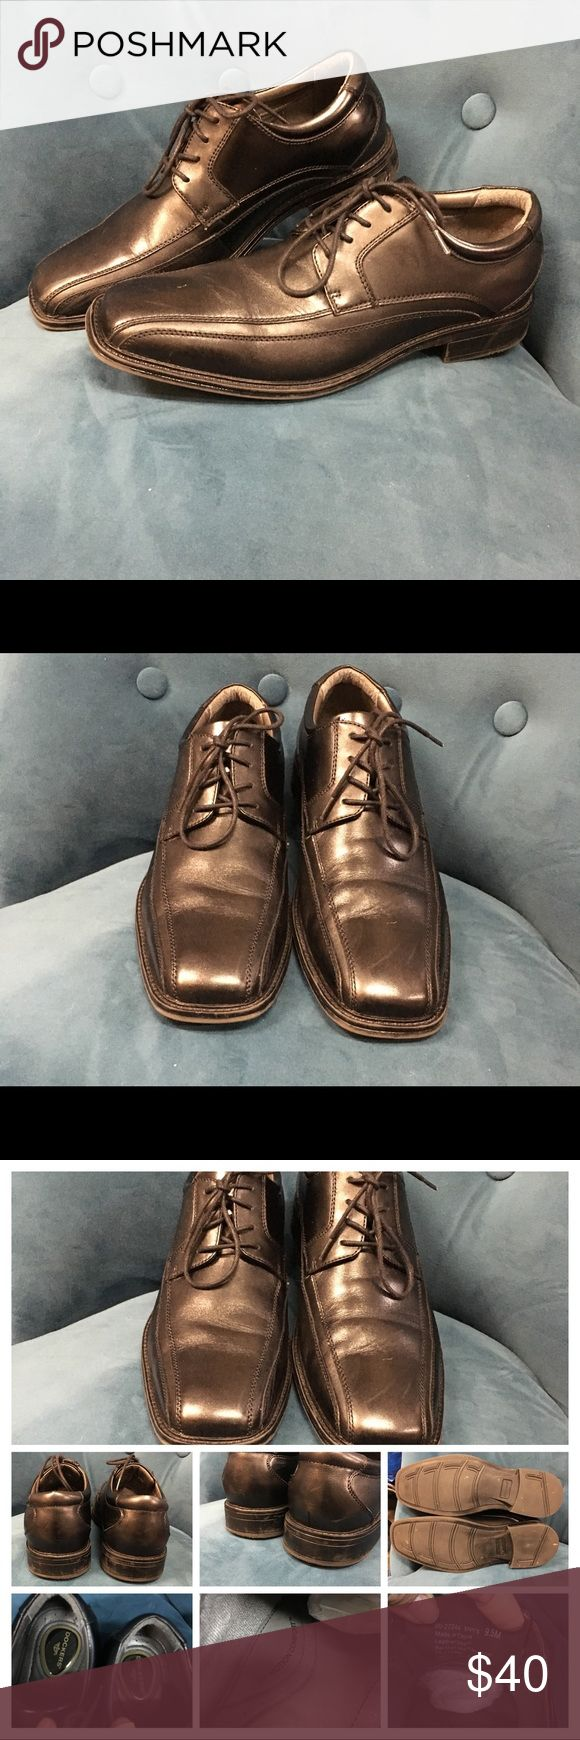 9.5M, Black Dockers Newton dress shoes,EUC These black Docker bicycle toe styled dress shoes have been gently cared for. Worn 90% of the time on carpet in office. No hard wear in these. Recently shined at Shoe Shop. Gel heel, leather uppers/footbed. Rubber soles for slip resistance (and quieter). No heavy creasing, always used wooden shoe trees. Smoke, pet and odor free. Purchased at Nordstrom. Stock pic of Dockers Newton dress shoe Dockers Shoes Oxfords & Derbys